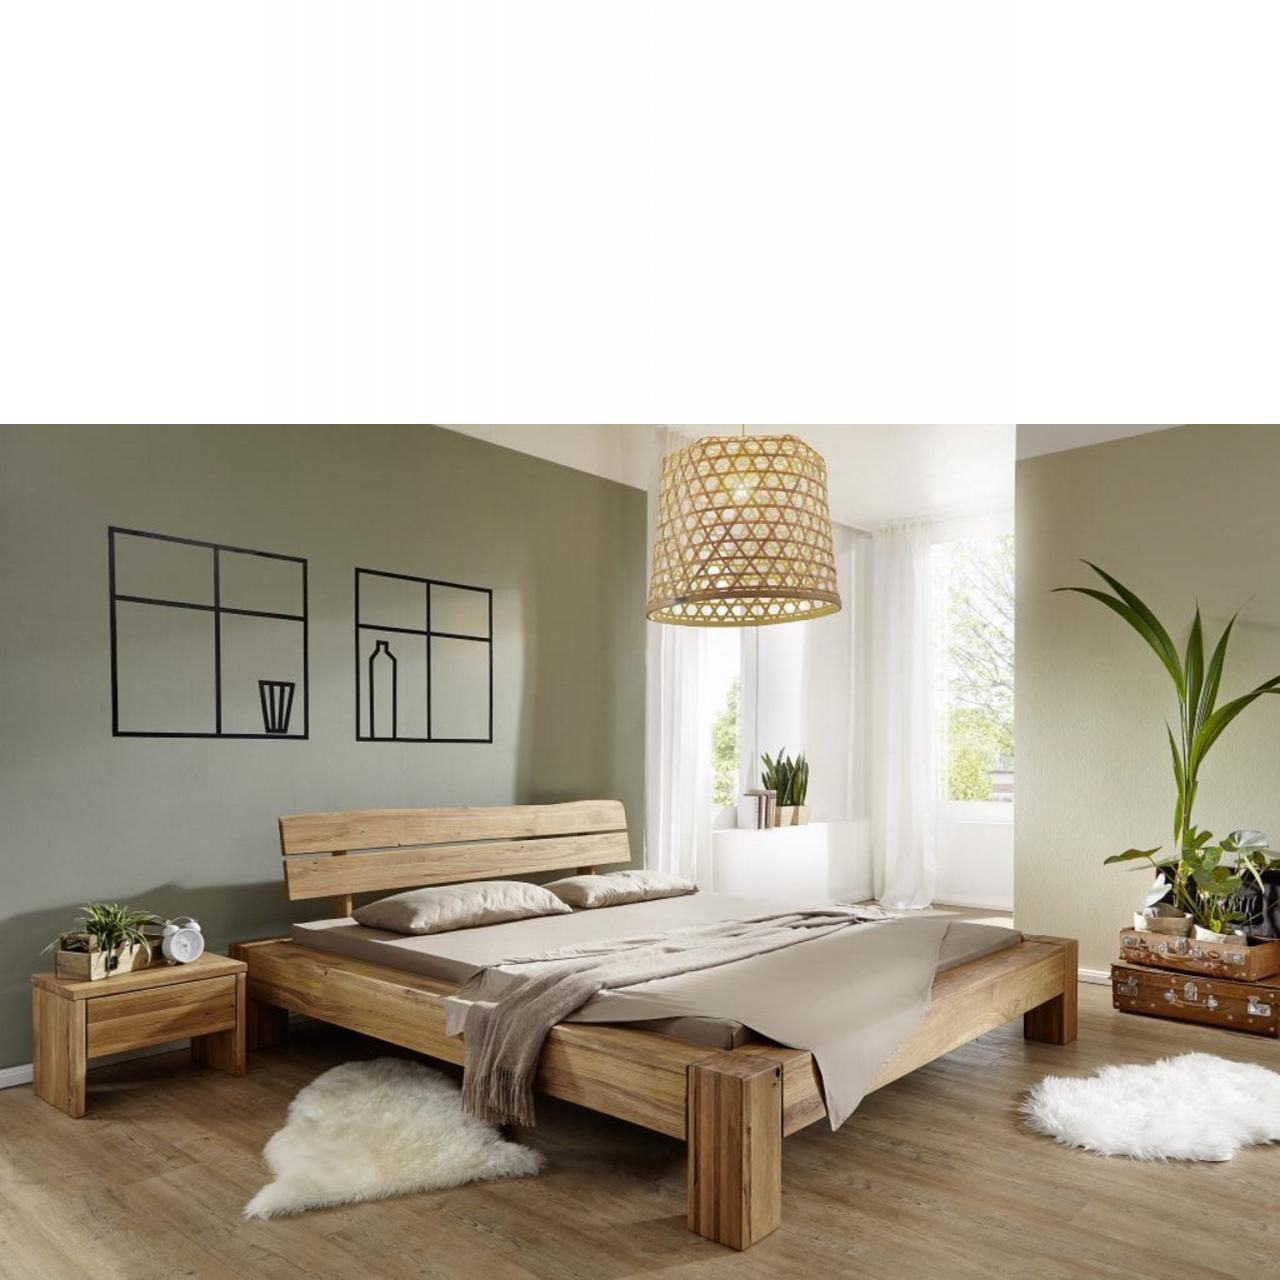 garderobensitzbank dakota garderobenm bel pinie wei m bel j hnichen center gmbh. Black Bedroom Furniture Sets. Home Design Ideas